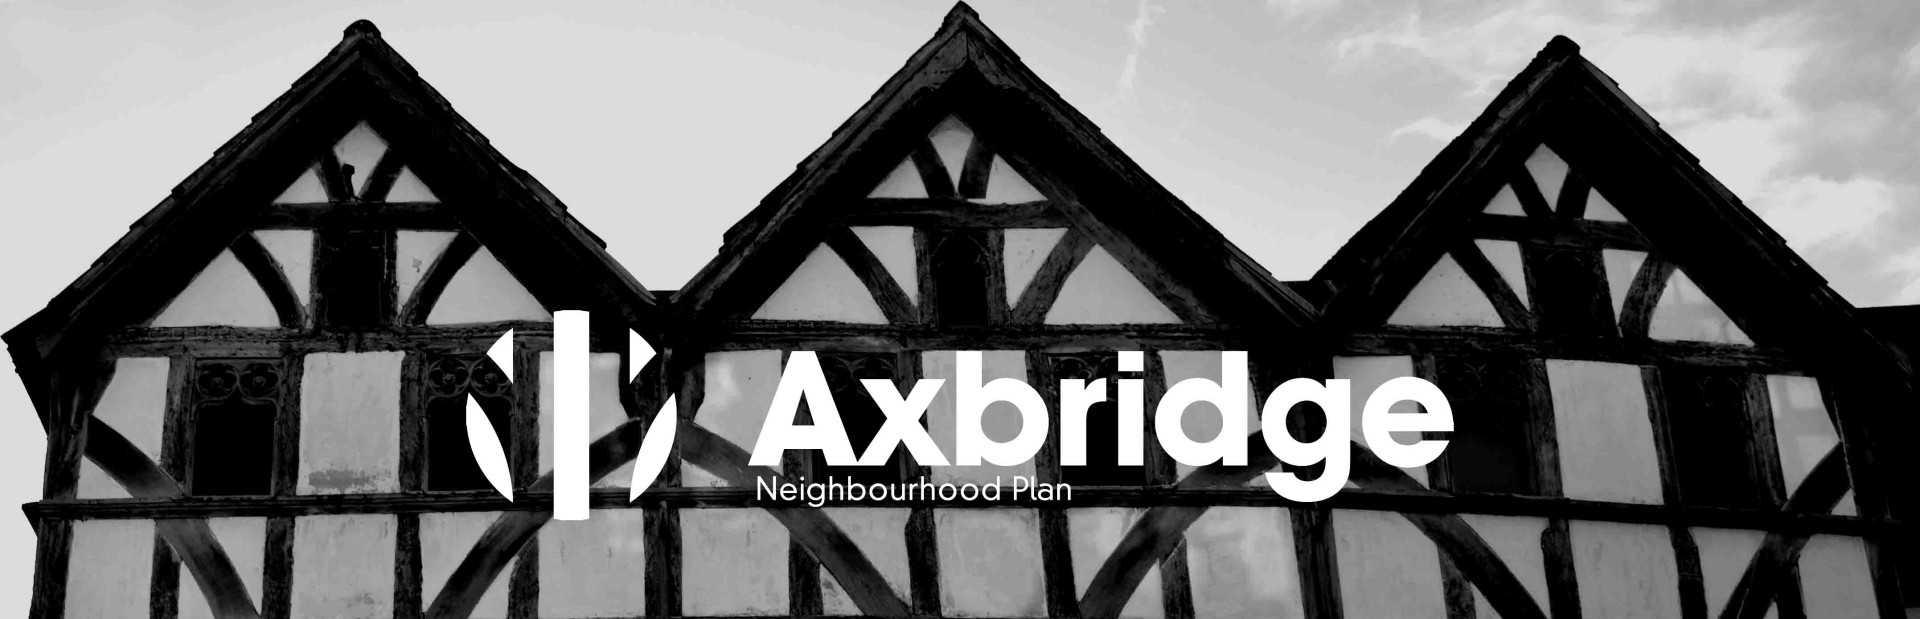 Axbridge Neighbourhood Plan